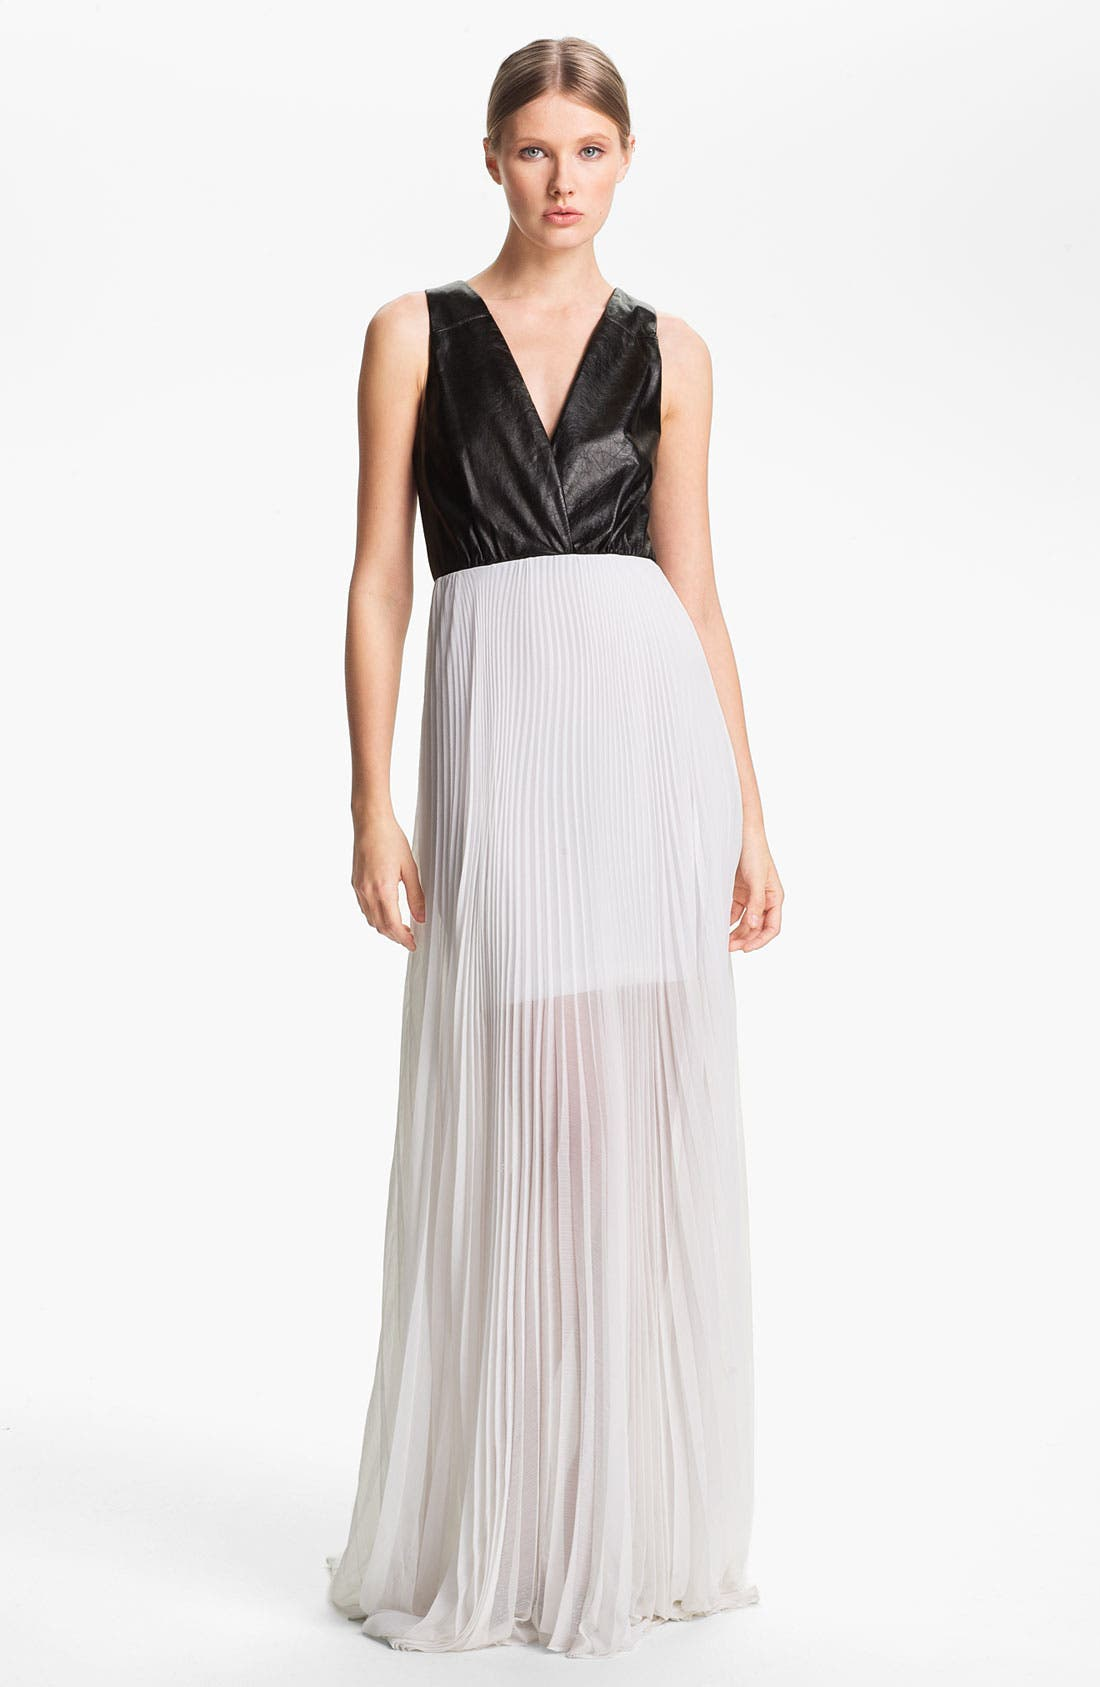 Main Image - Alice + Olivia Leather Bodice & Chiffon Dress